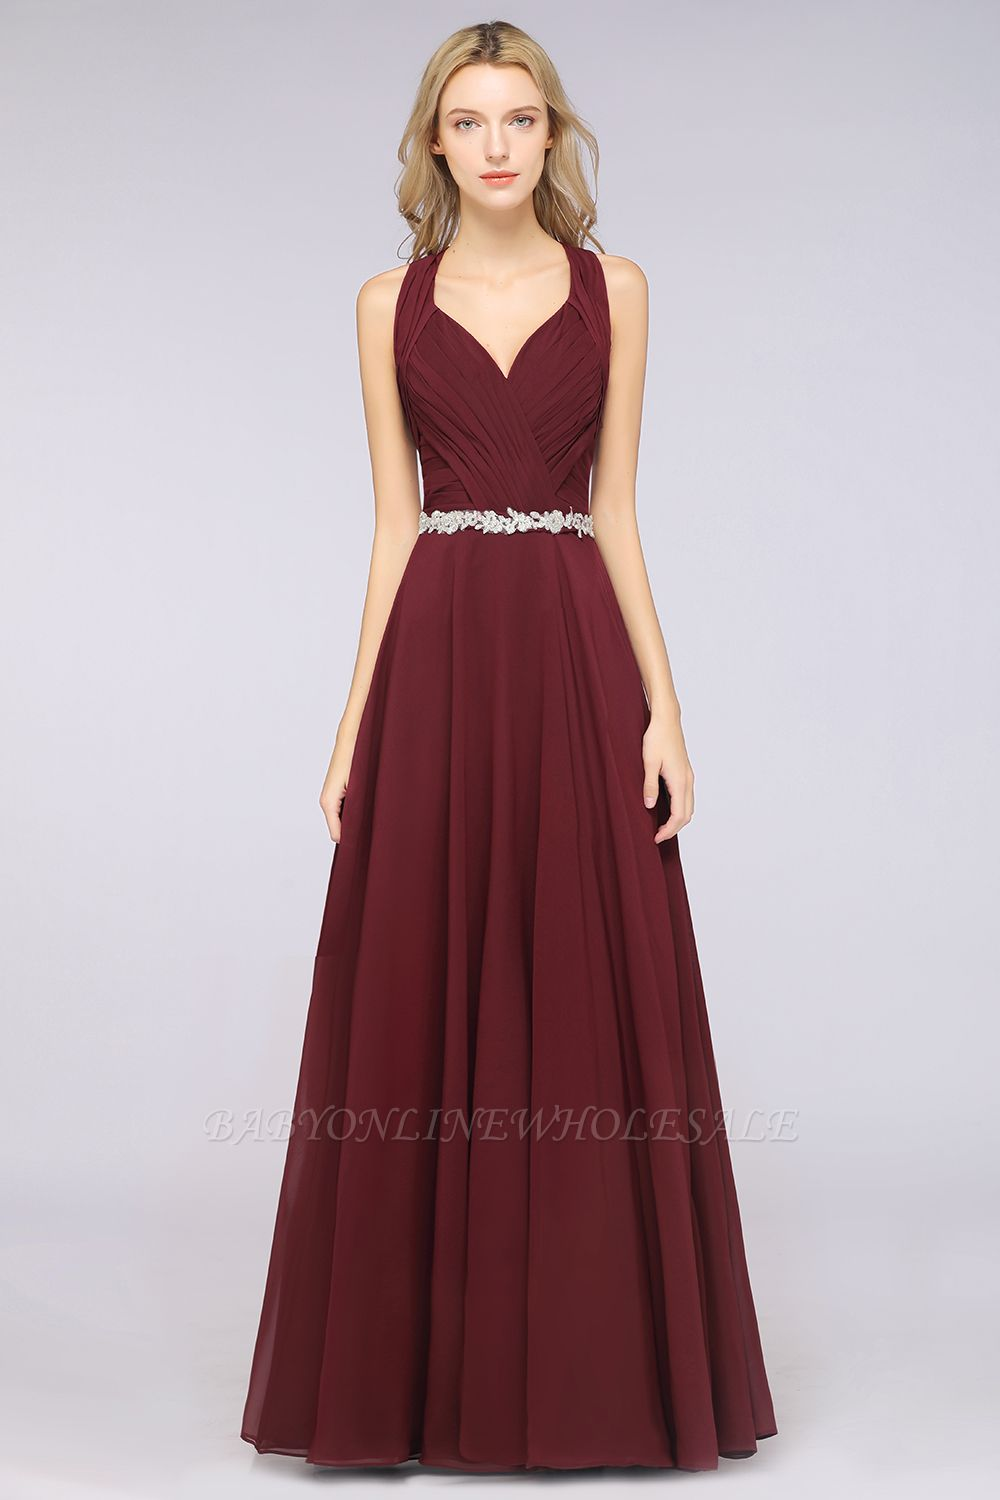 Chiffon A-Line Halter V-Neck Sleeveless Ruffle Long Bridesmaid Dress with Appliques Sashes